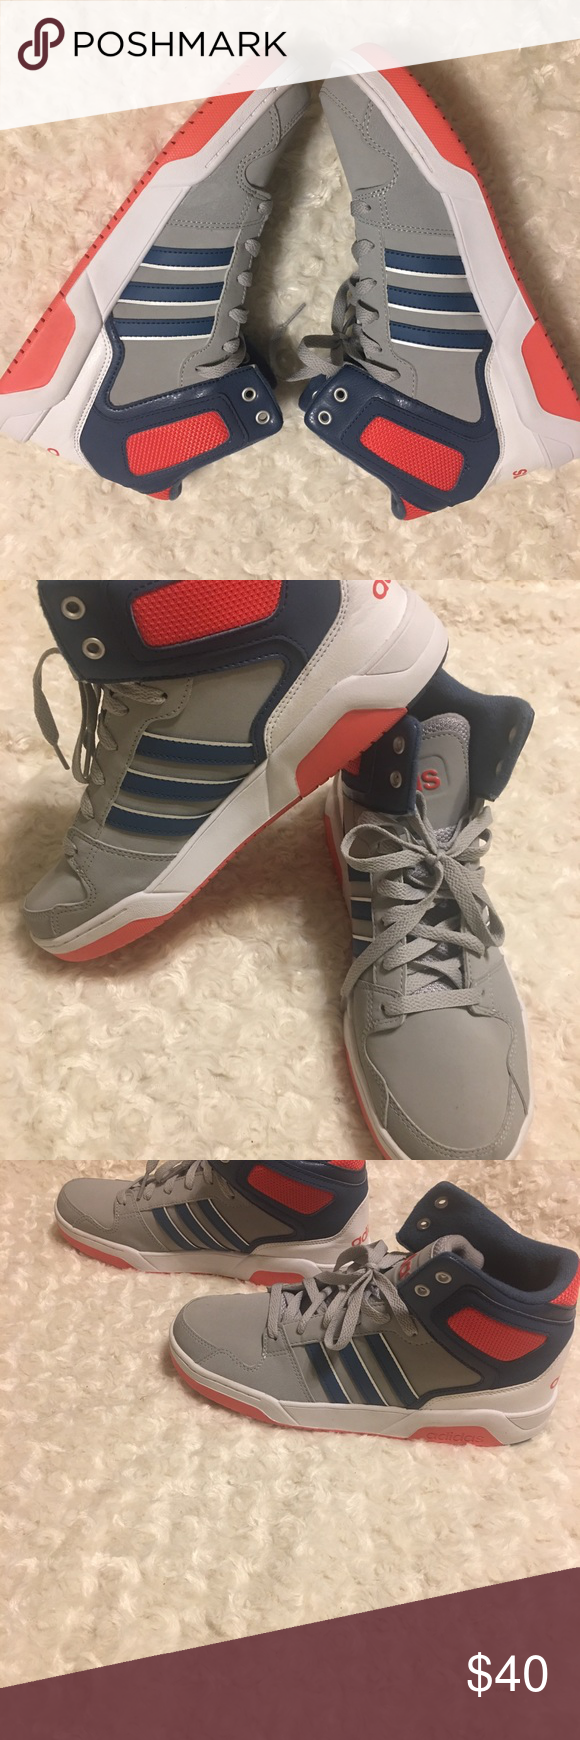 watch 16042 5bd79 New Adidas Neo BB9TIS Hi Top Sneaker 7 Blue White New without box big kids  sz 7 Adidas Neo hi top shoes in the uncommon colorway of red ash gray blue.